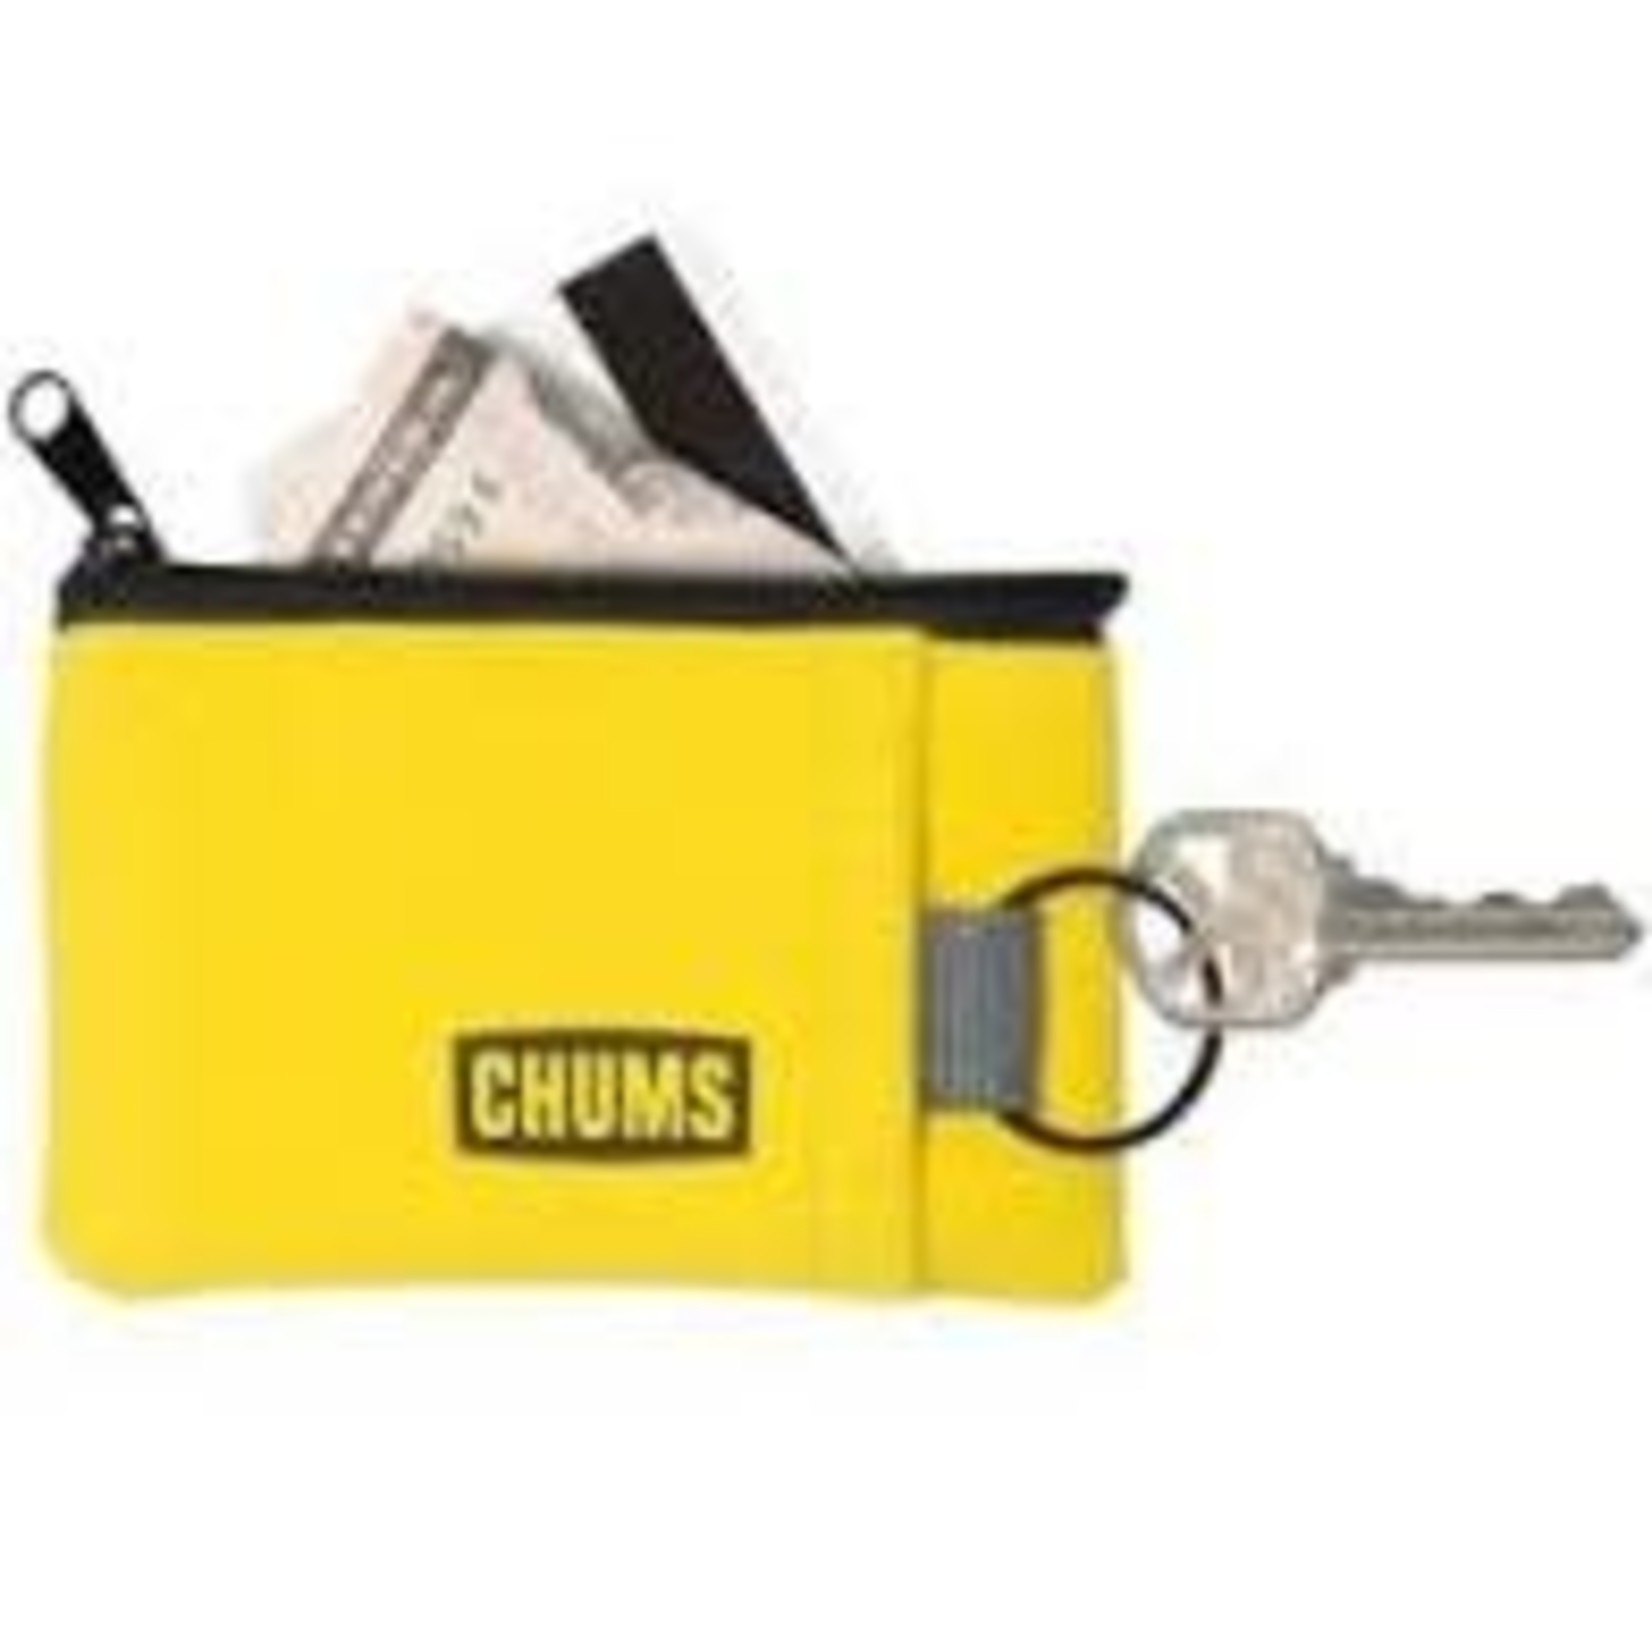 Chums Chums Floating Marsupial Wallet